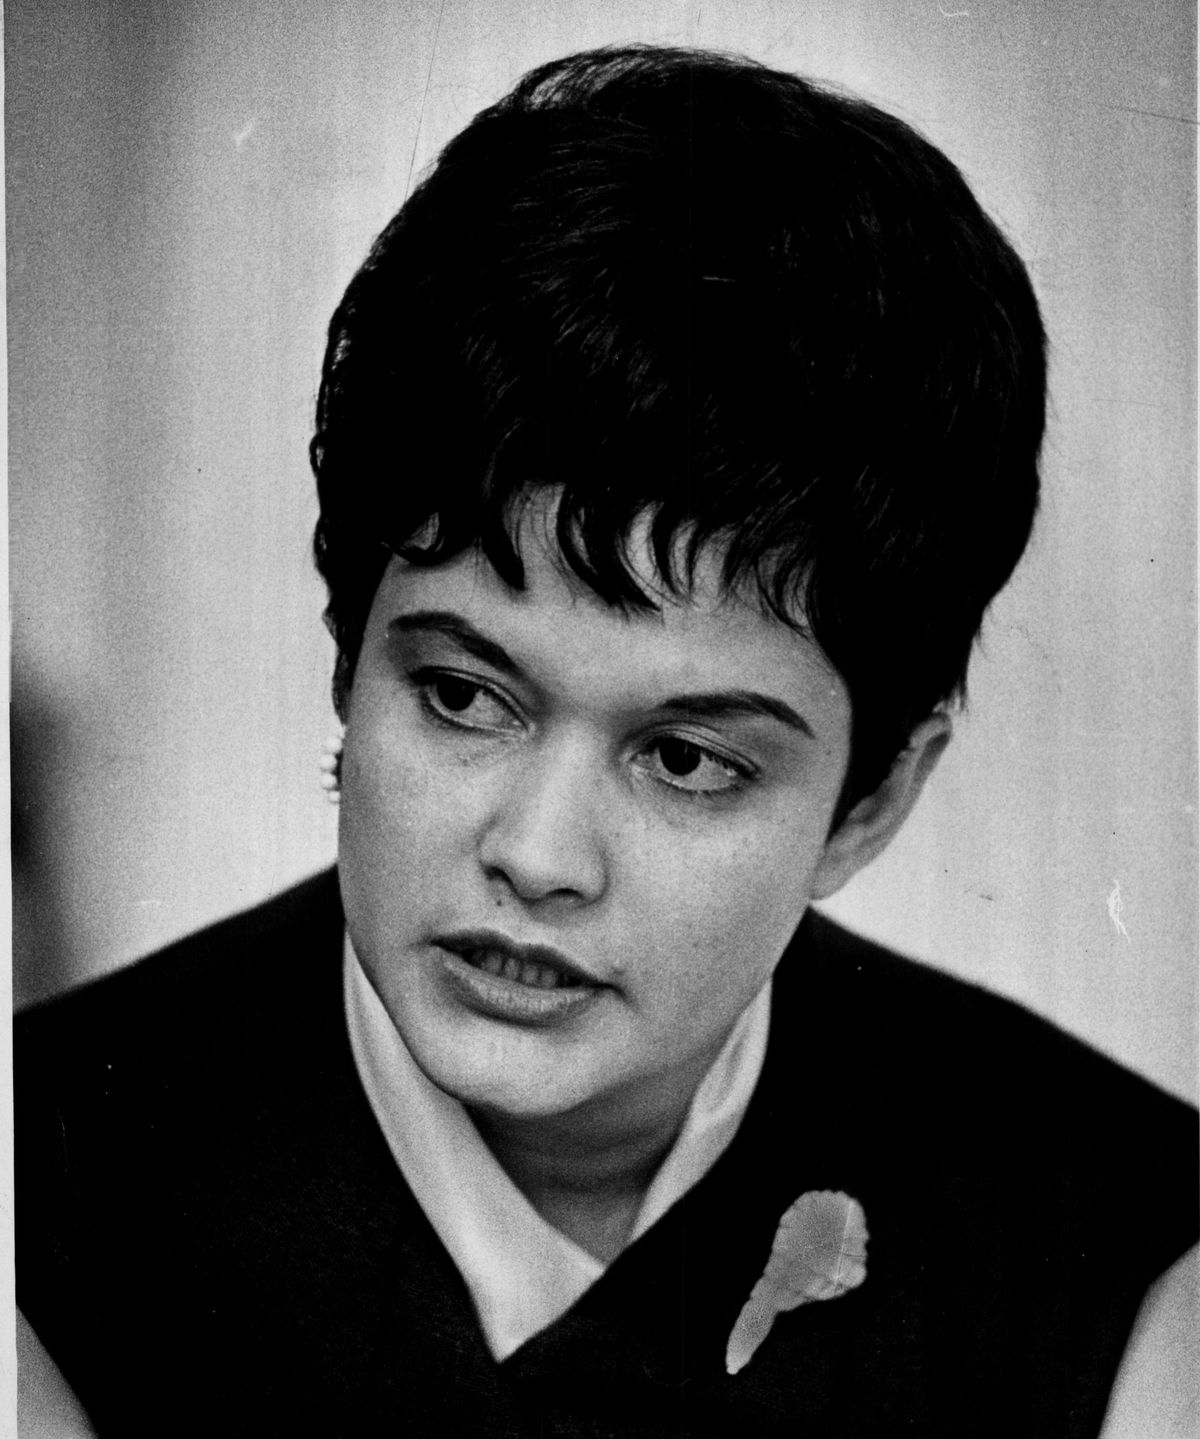 María Cerda in 1972 during her time on the Chicago Board of Education.